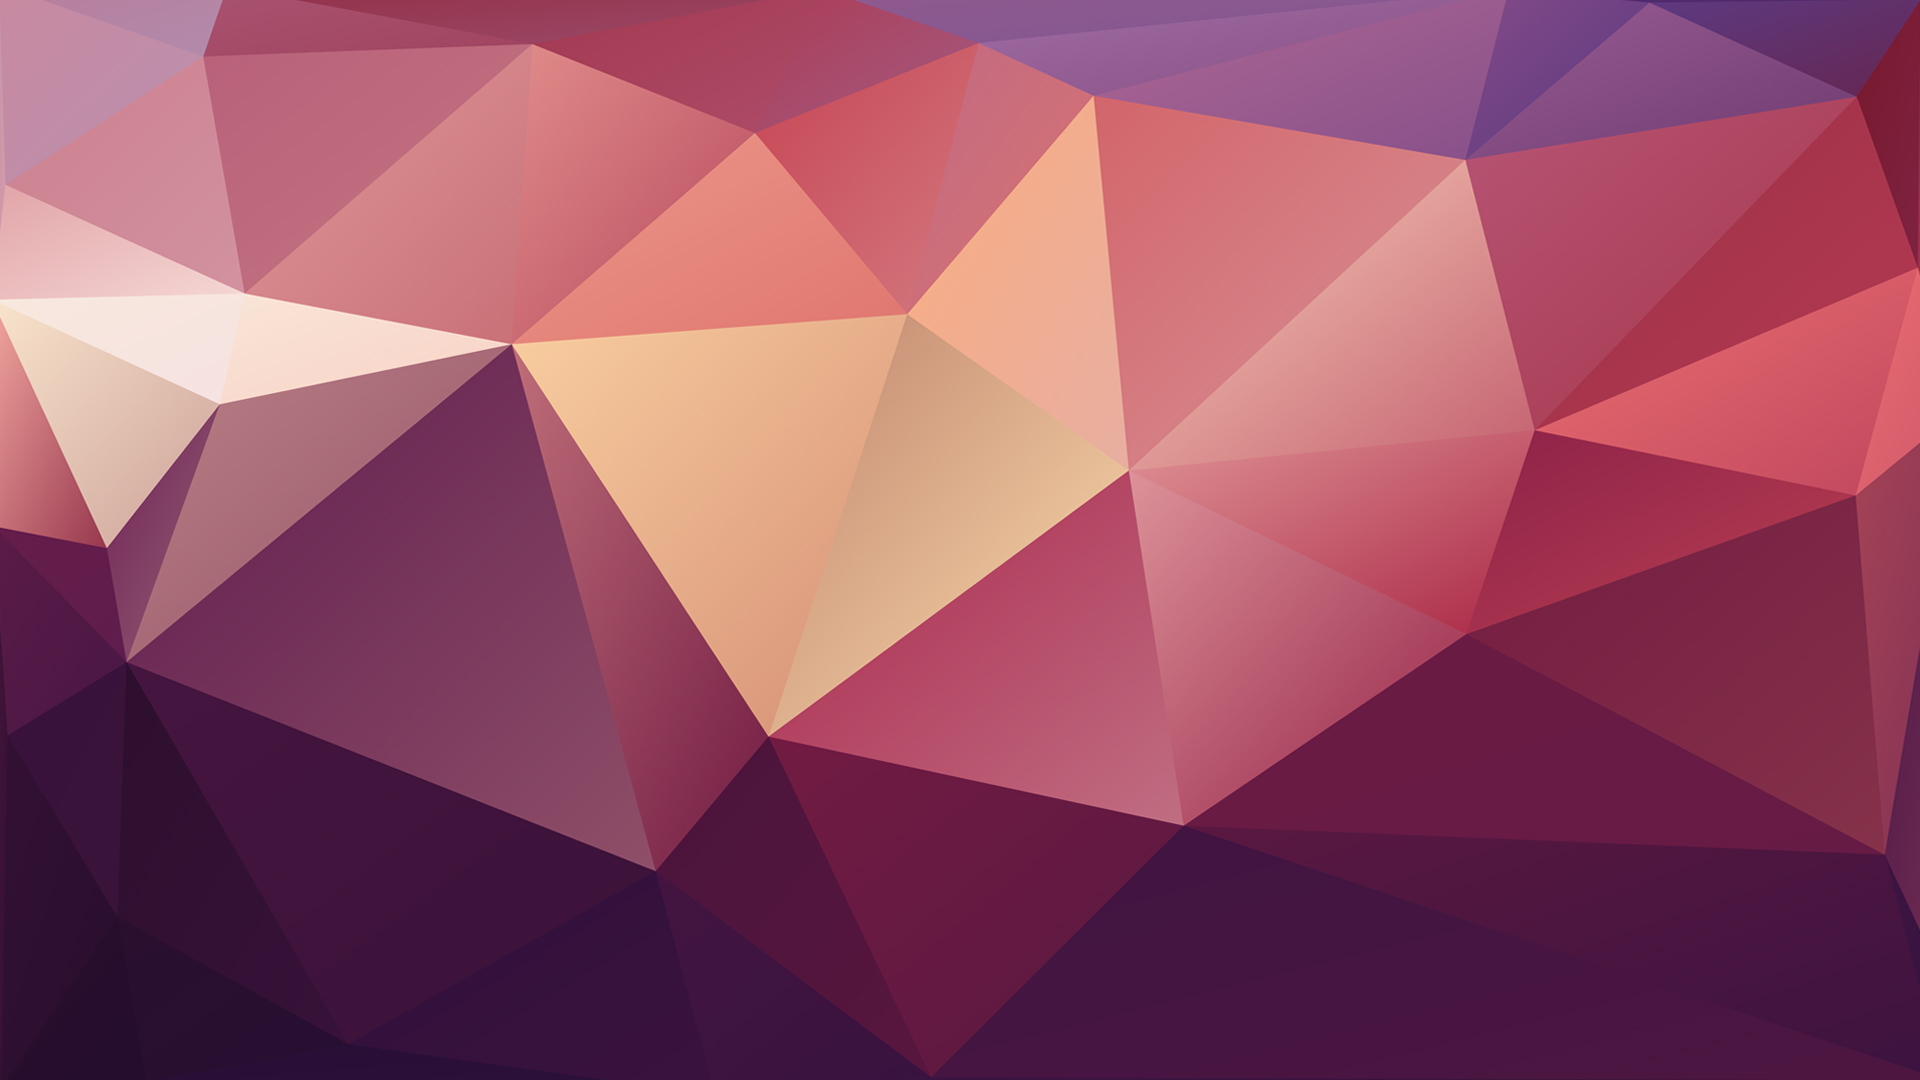 Abstract Geometric Low Poly - Wallpaper by McFrolic